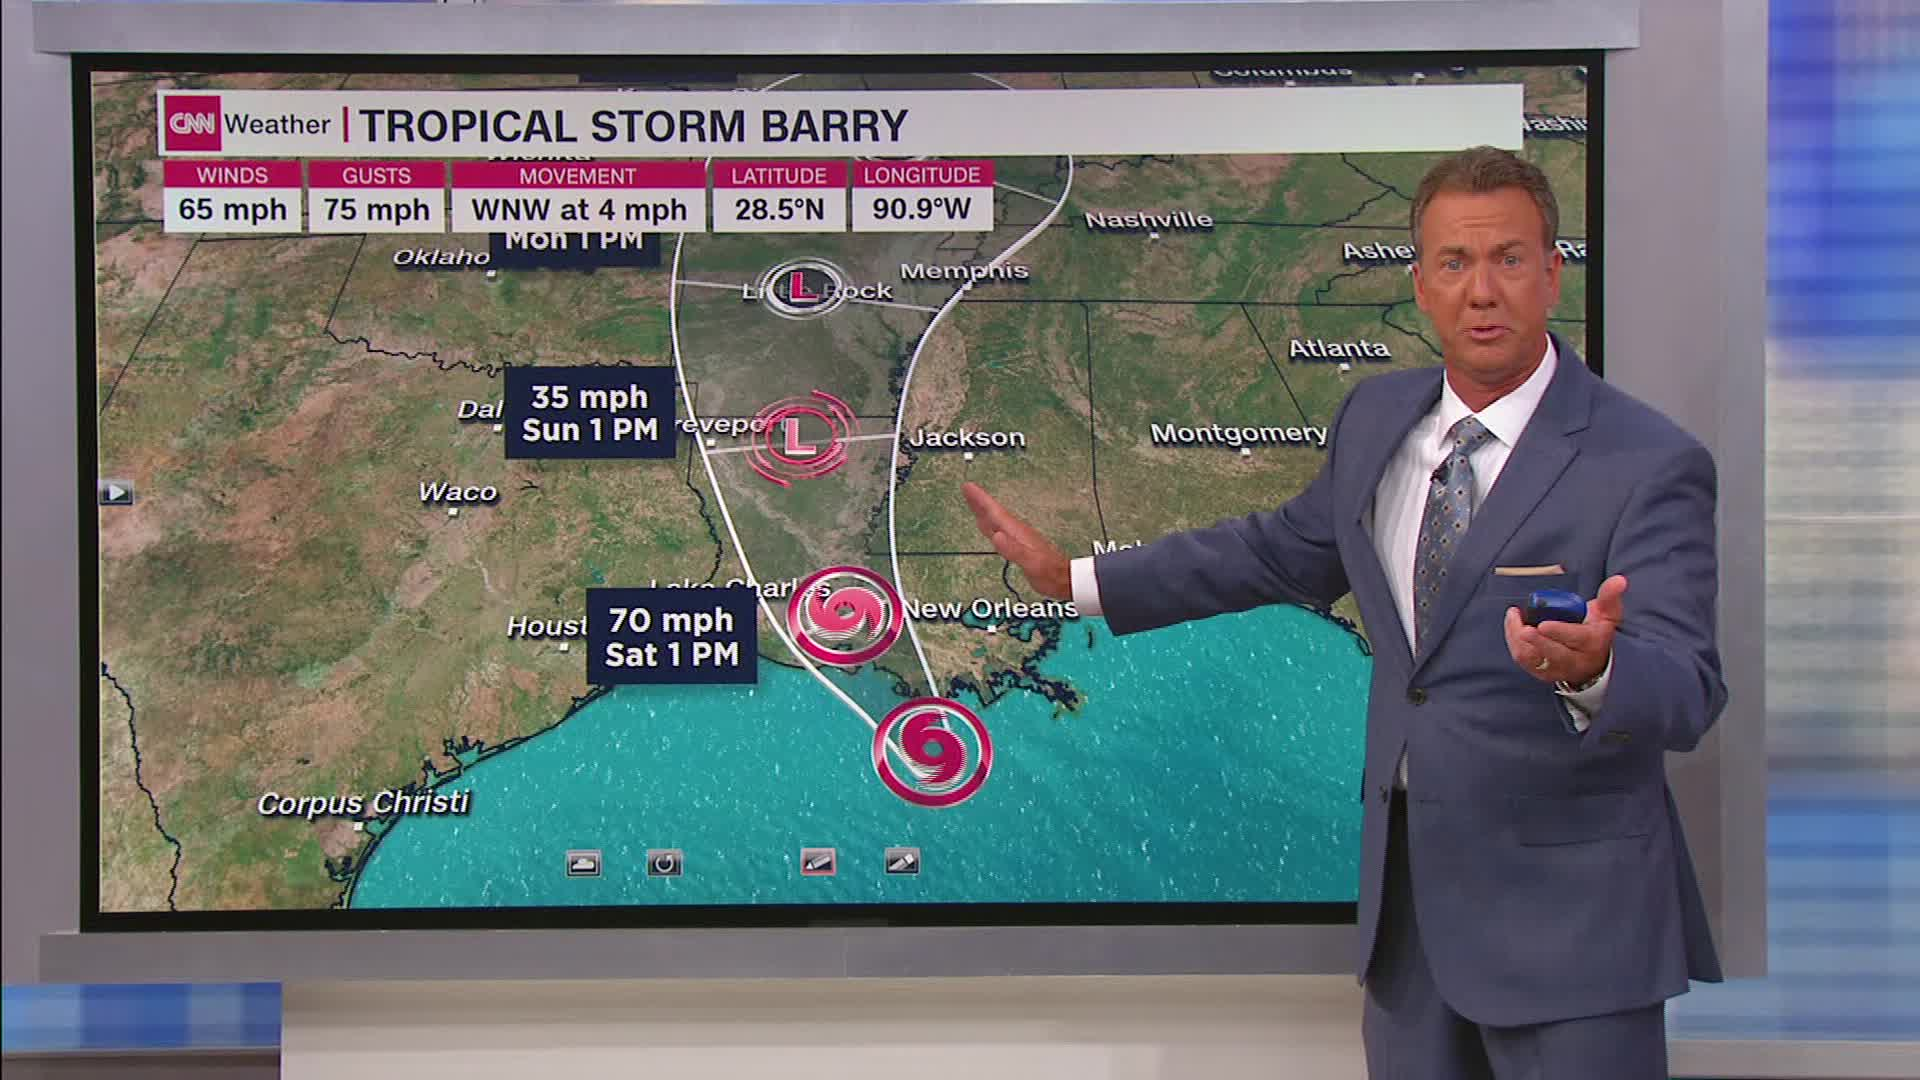 Hurricane conditions likely tonight as Barry strengthens